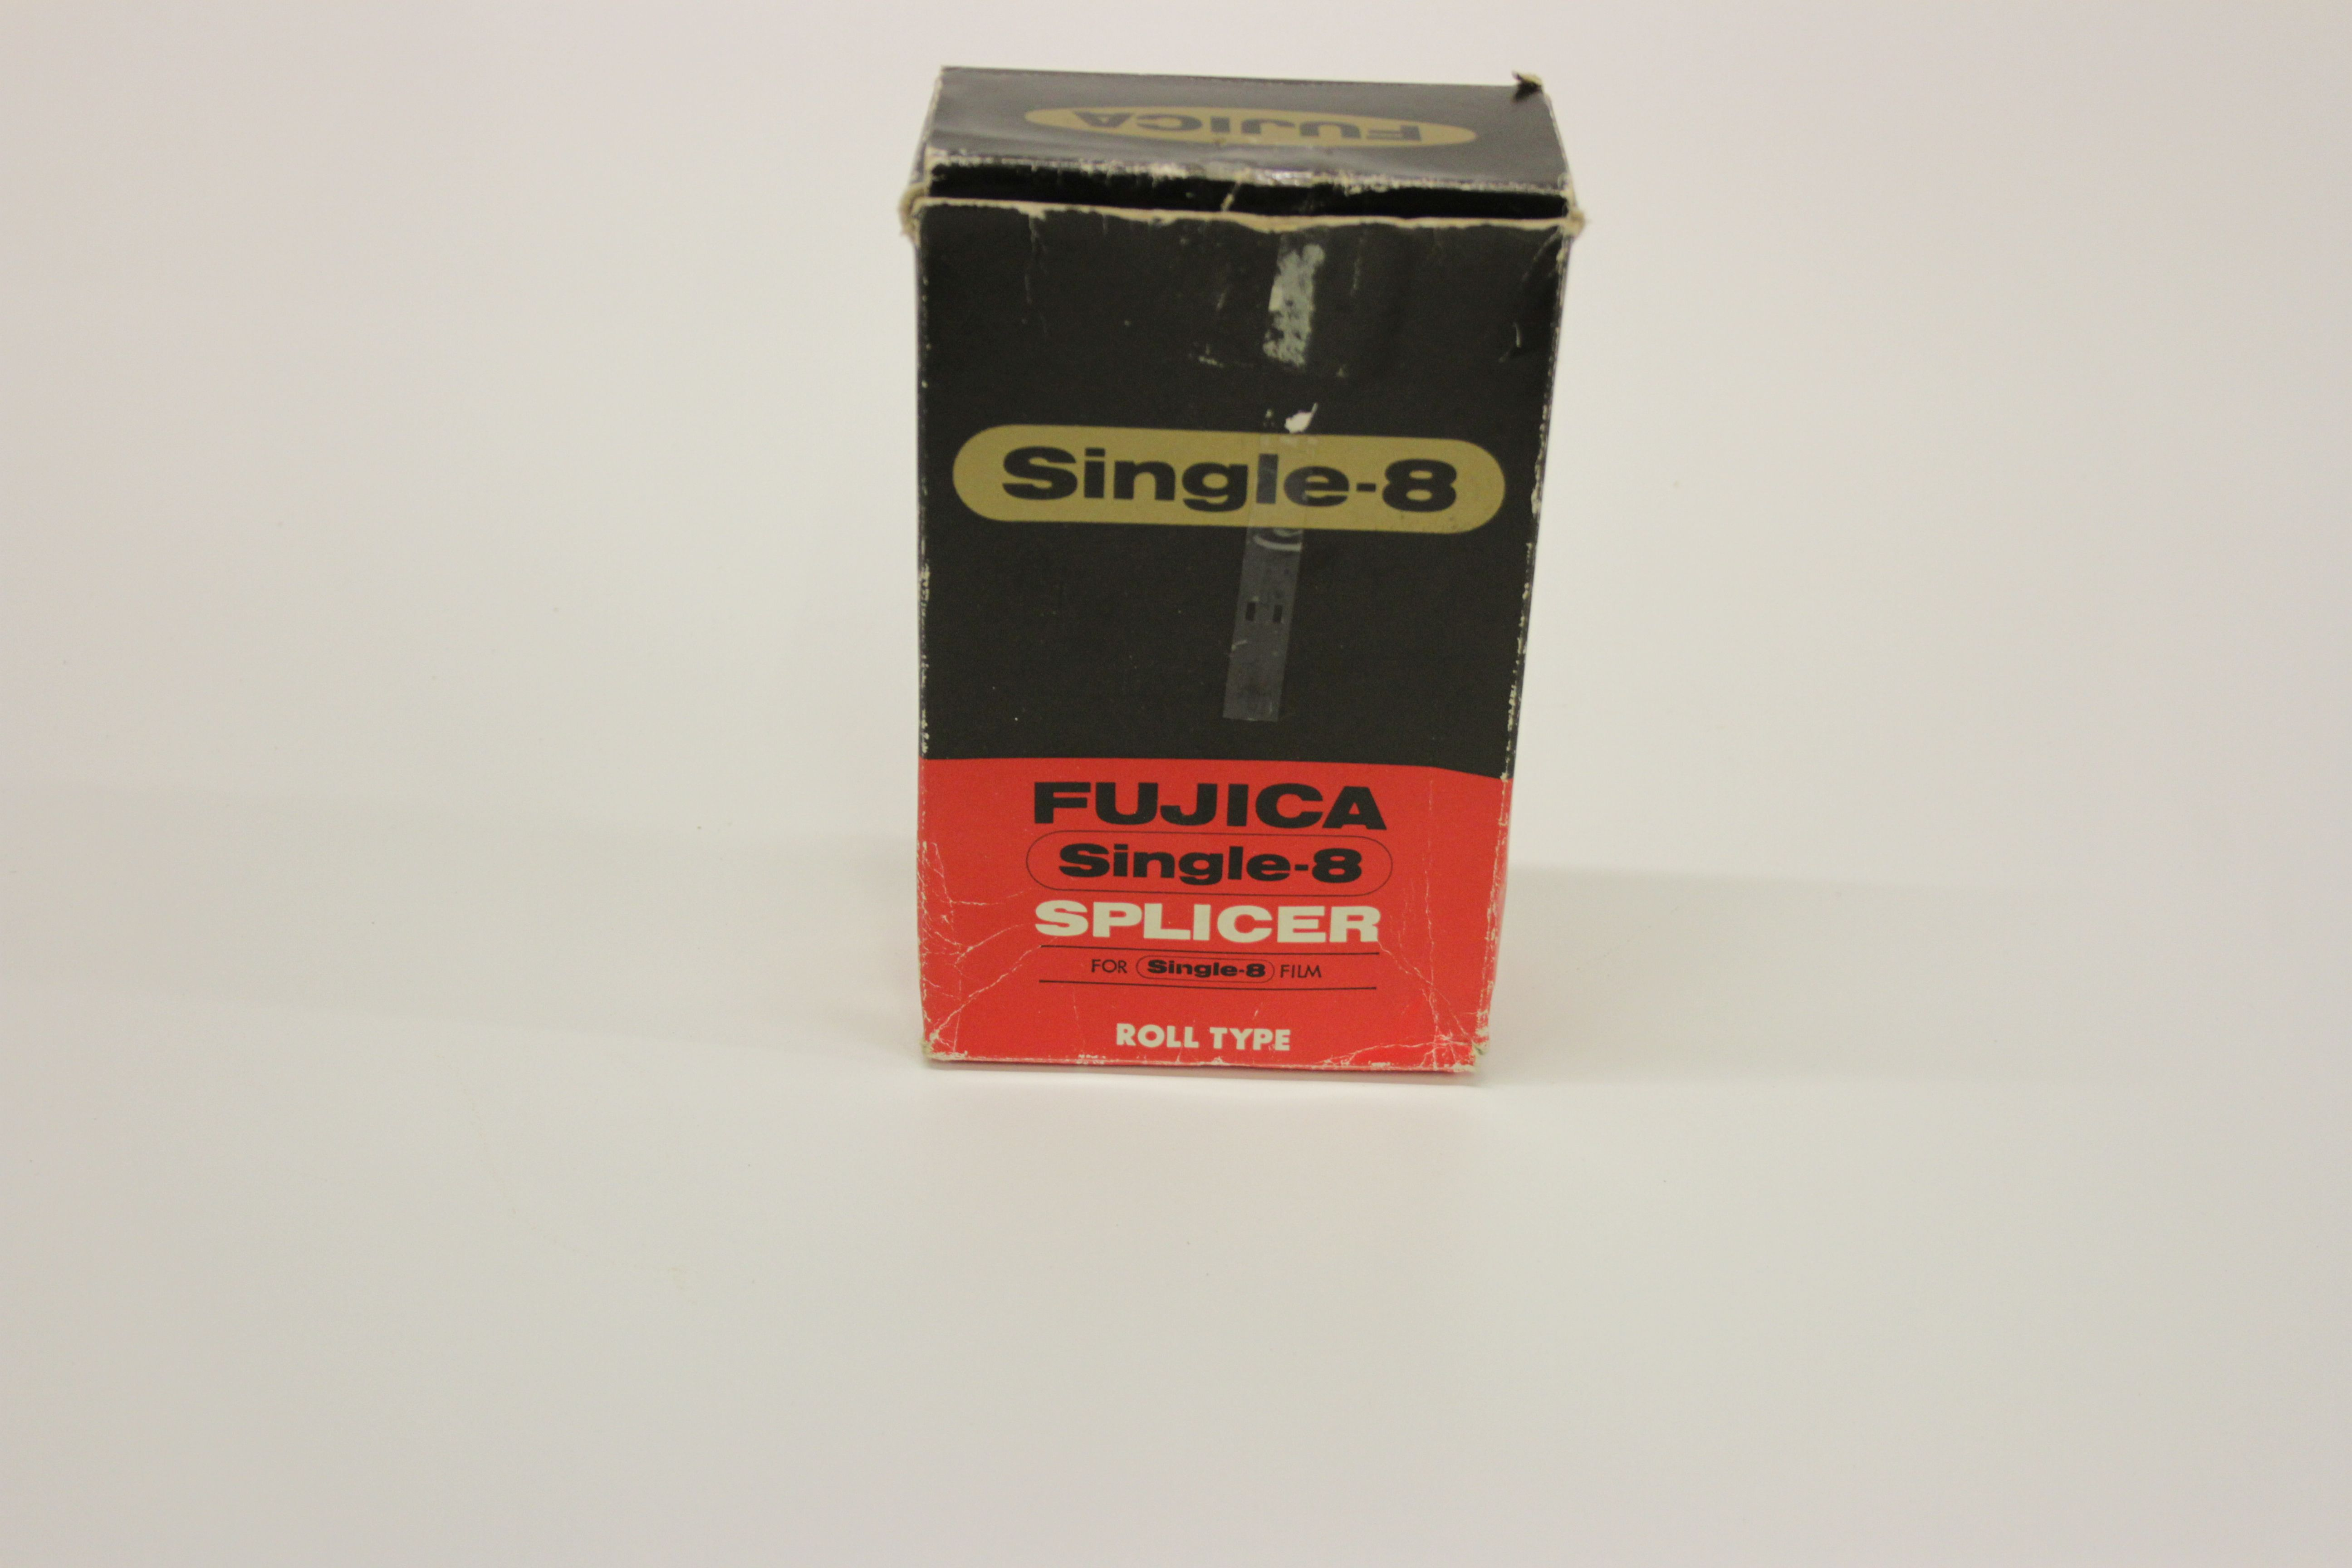 Fujica - Single 8 splicer (100 045)